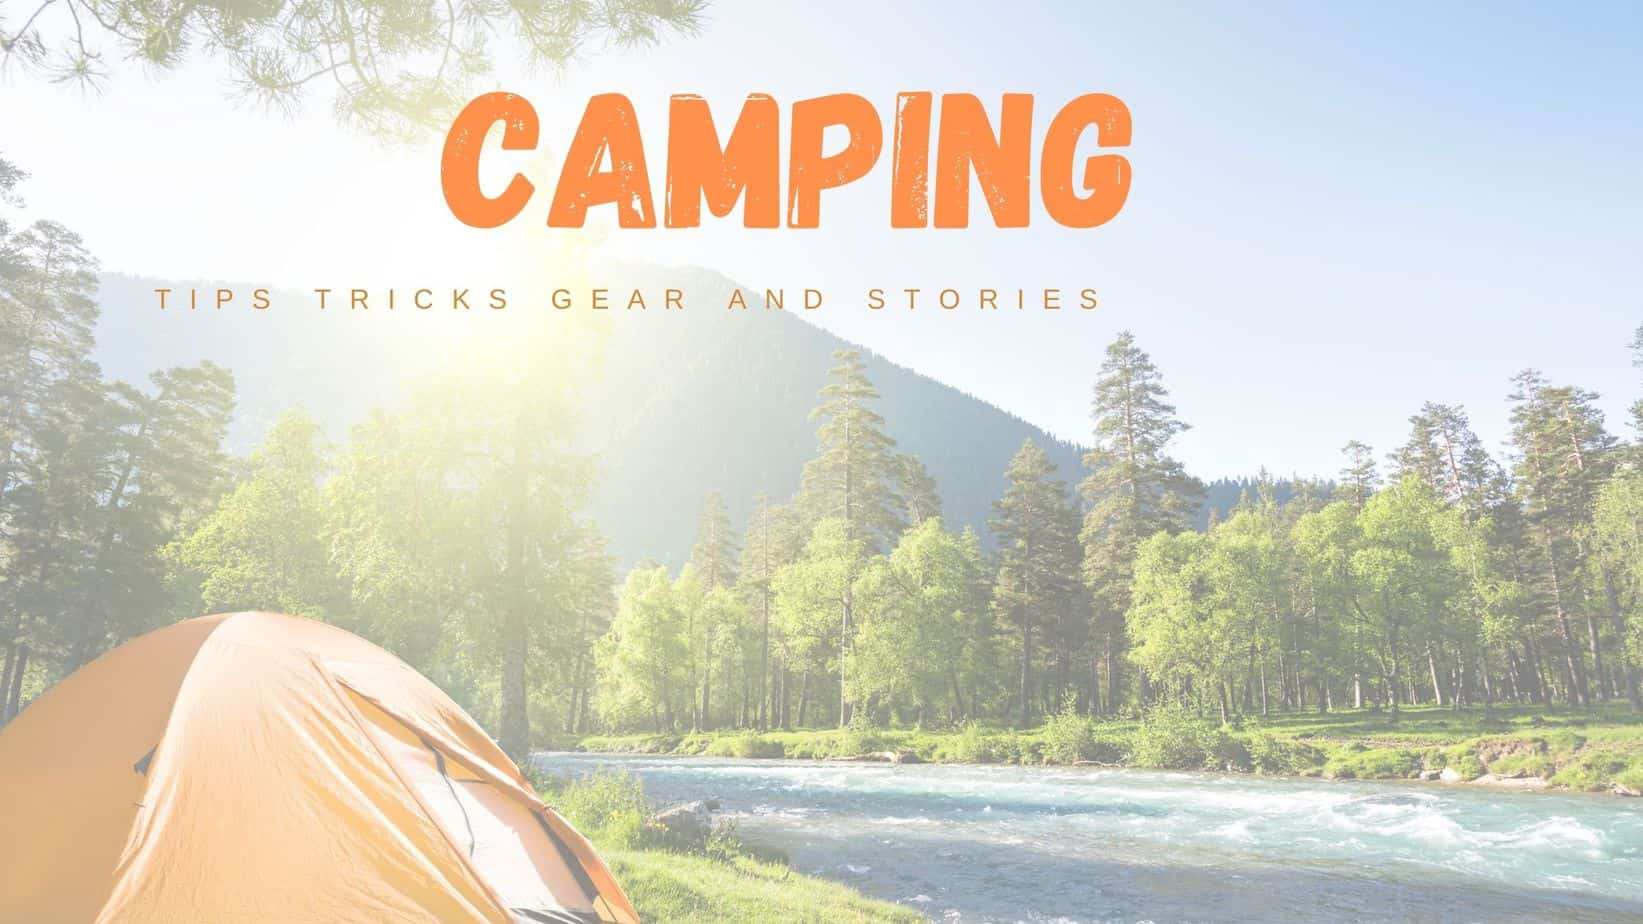 Camping in tent along a mountain stream